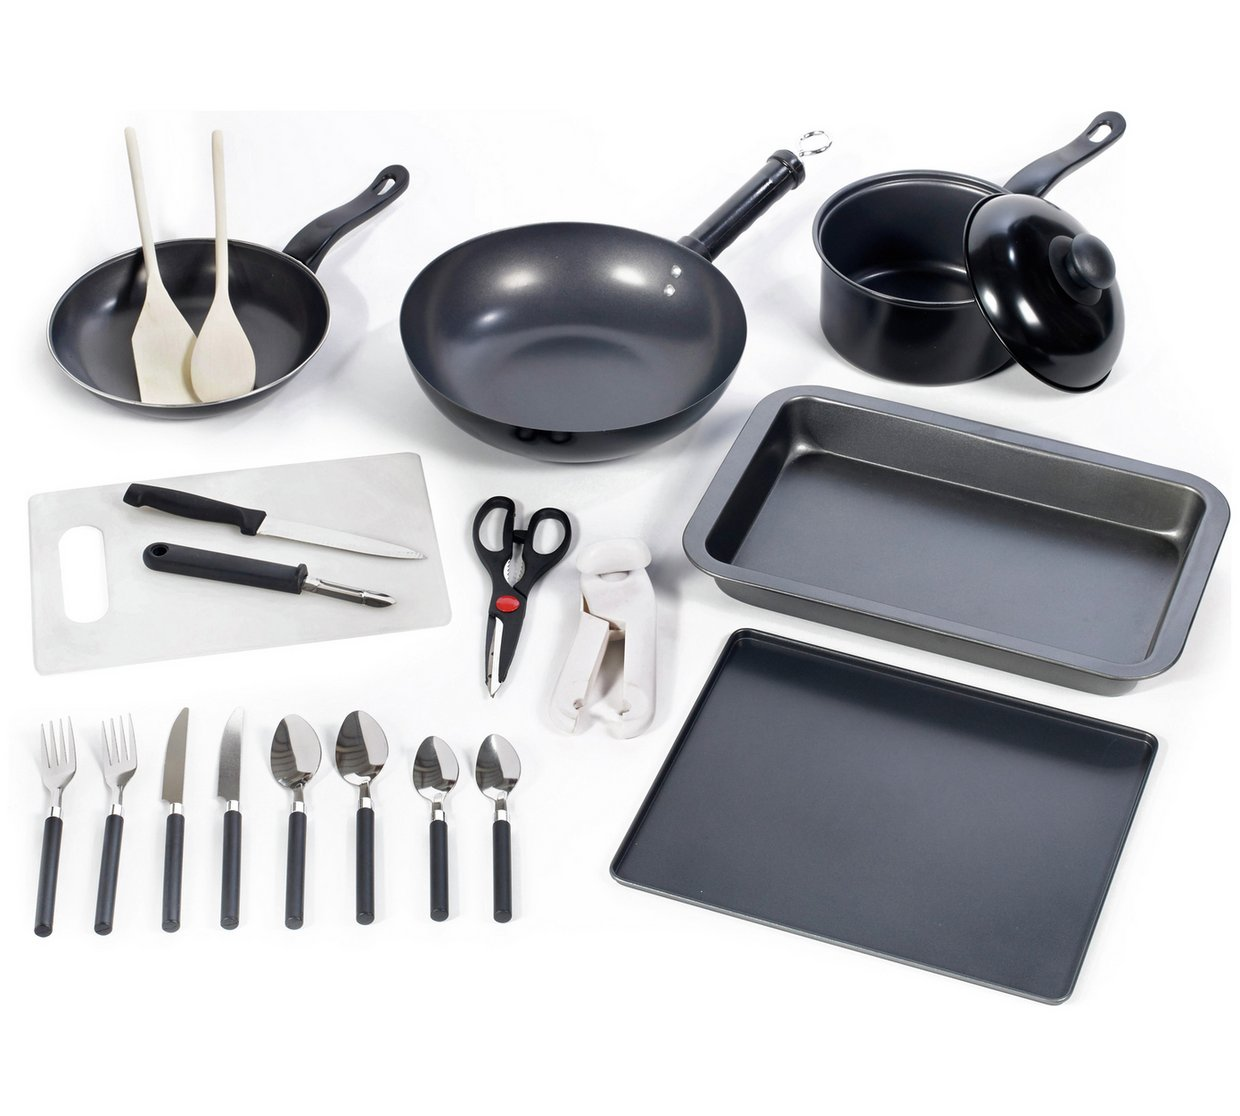 The Simple Value 20 Piece Kitchen Essentials Starter Set from Argos is available for £22.